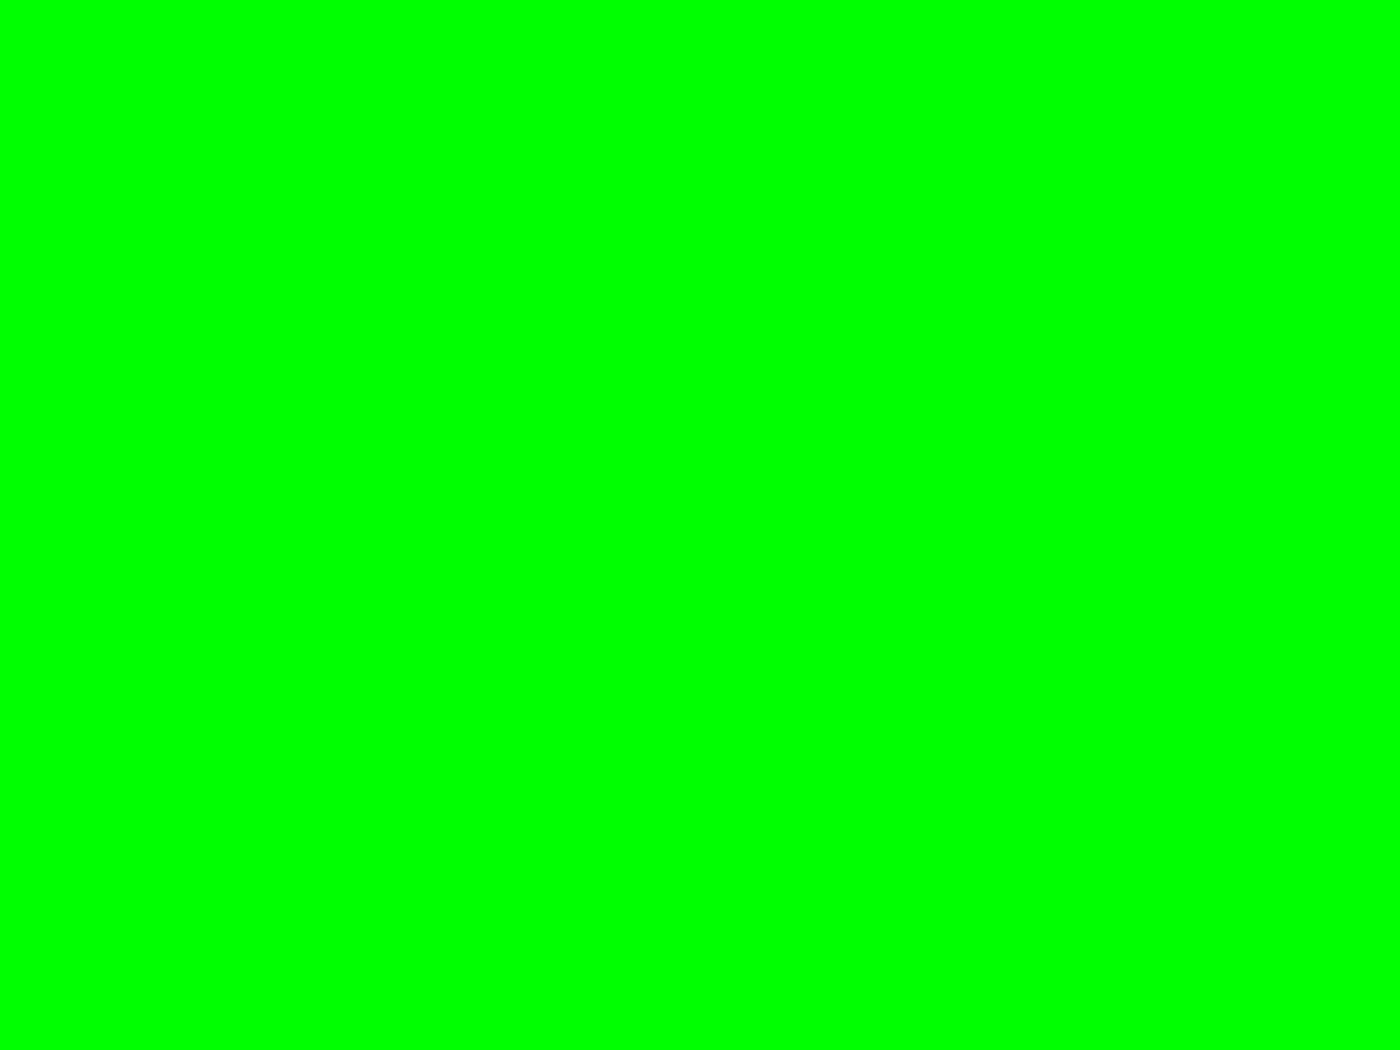 1400x1050 Green X11 Gui Green Solid Color Background